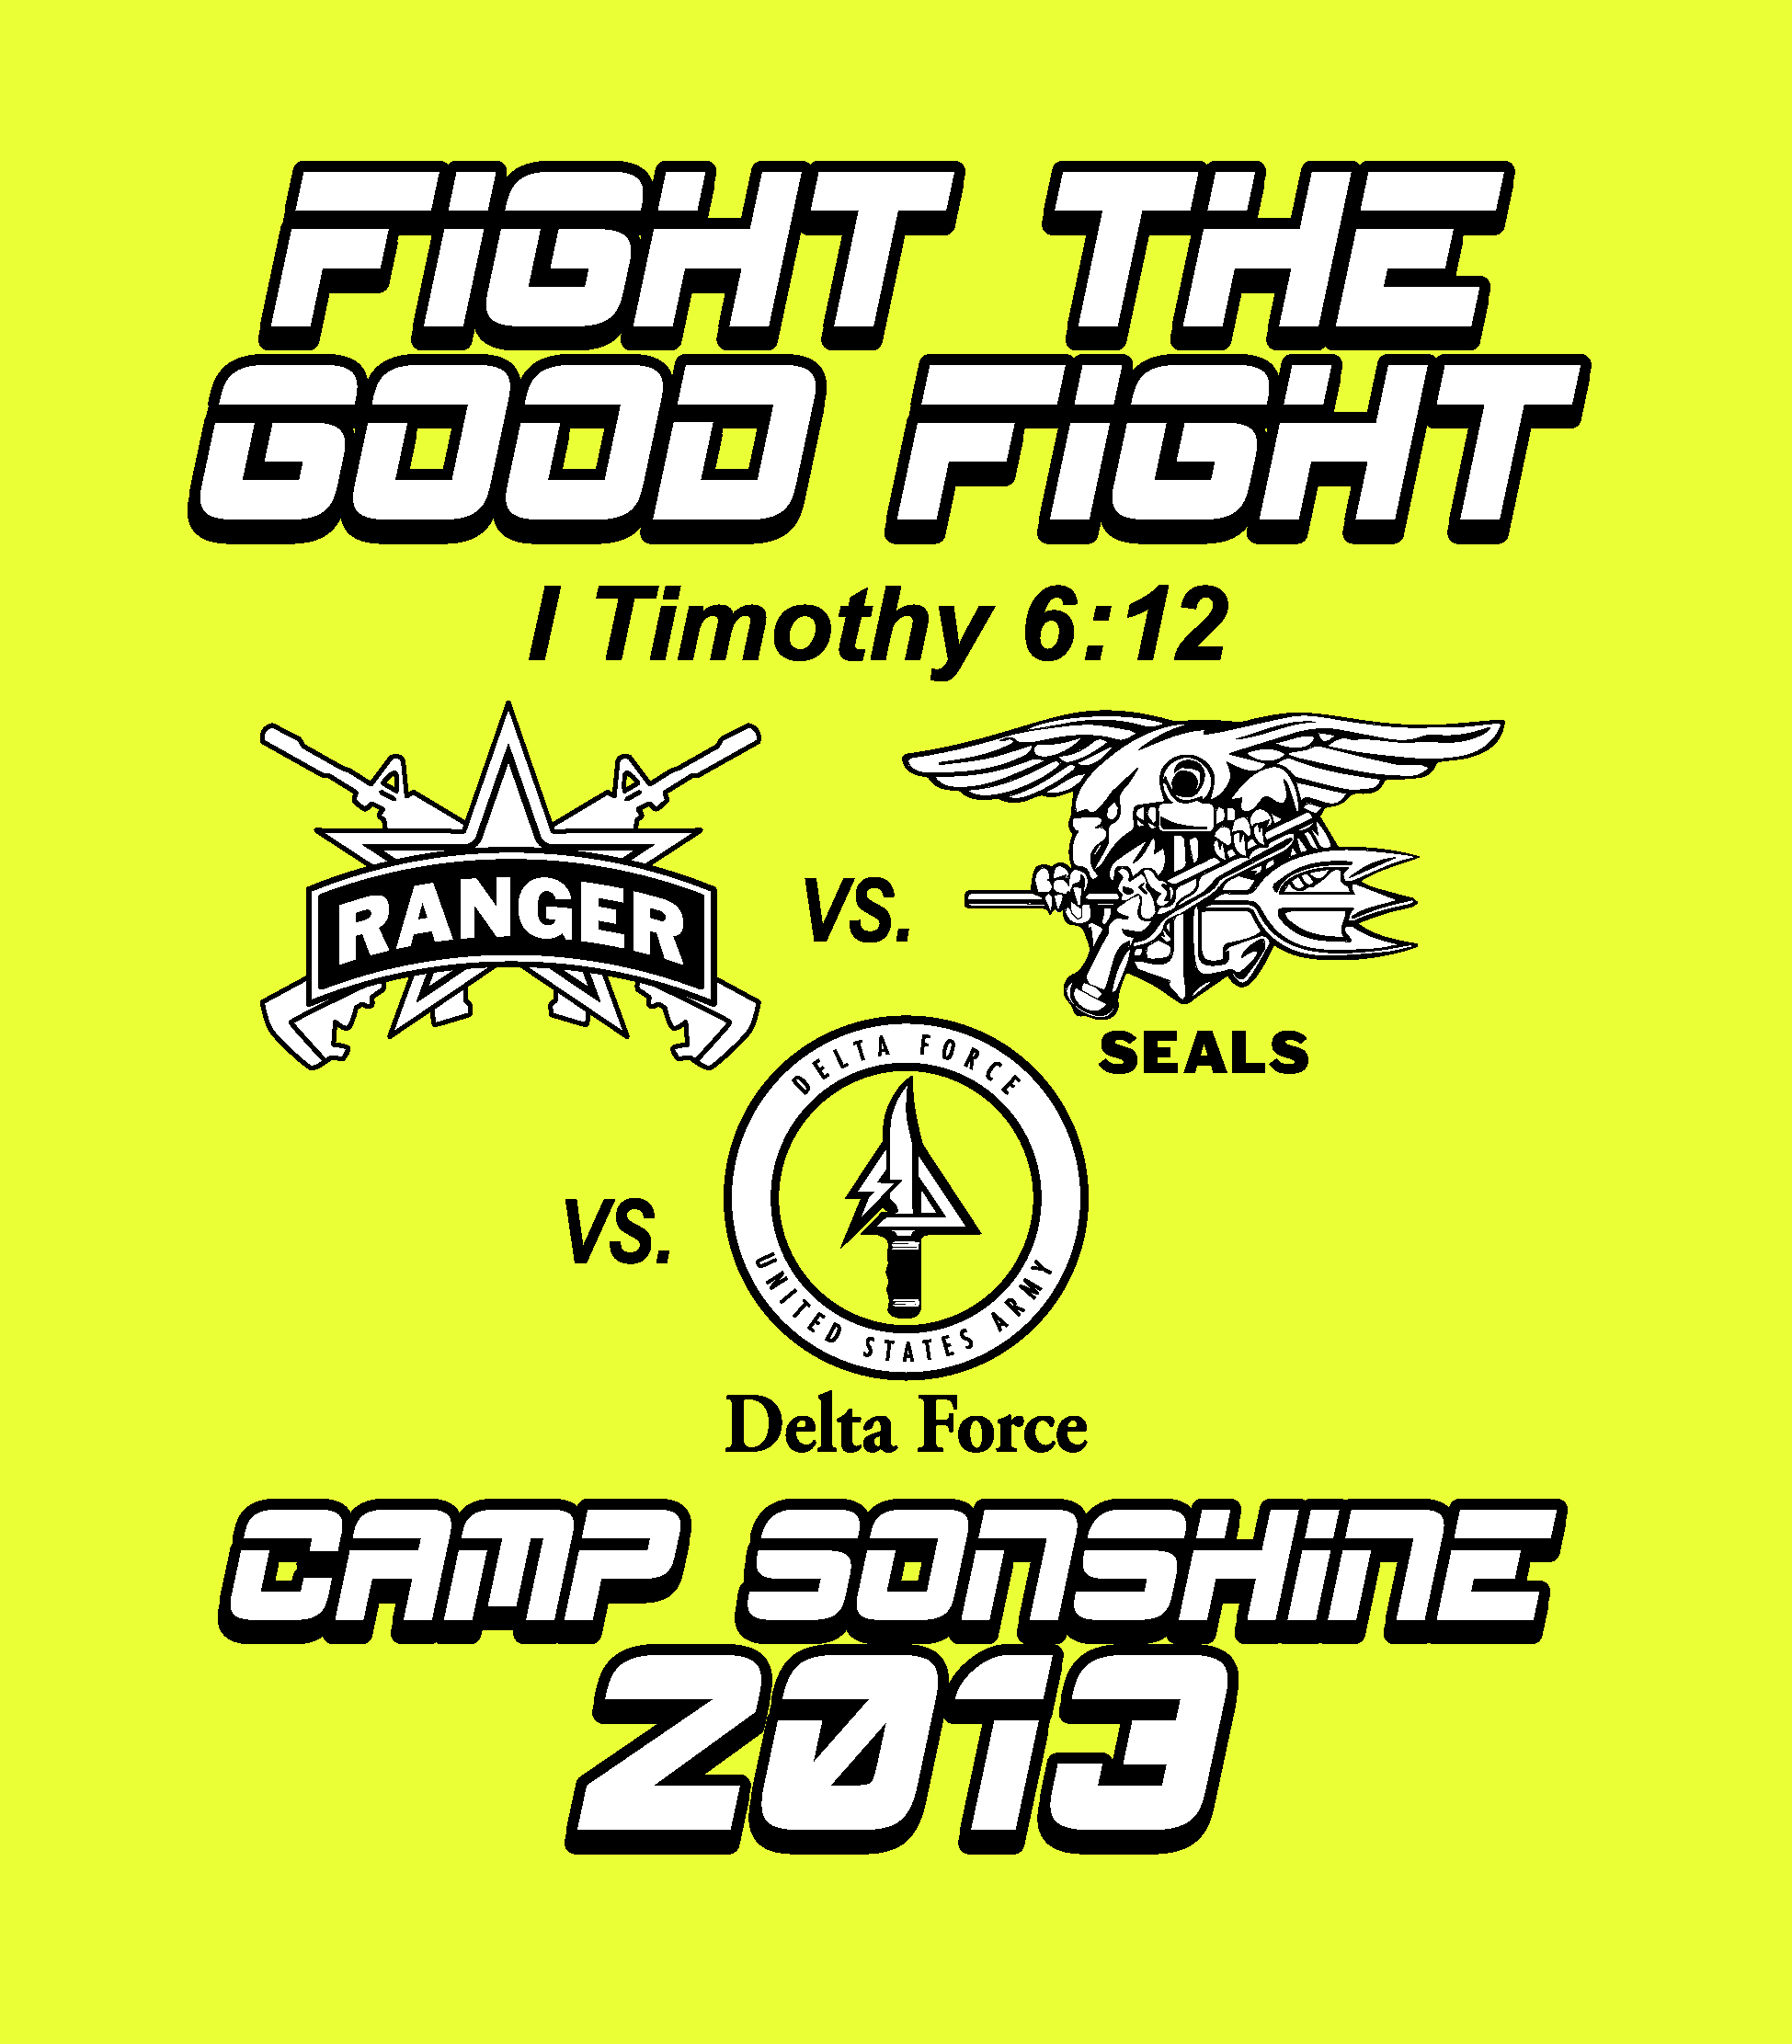 Camp Sonshine Summer Camp Tee First Free Will Baptist Church Melbourne